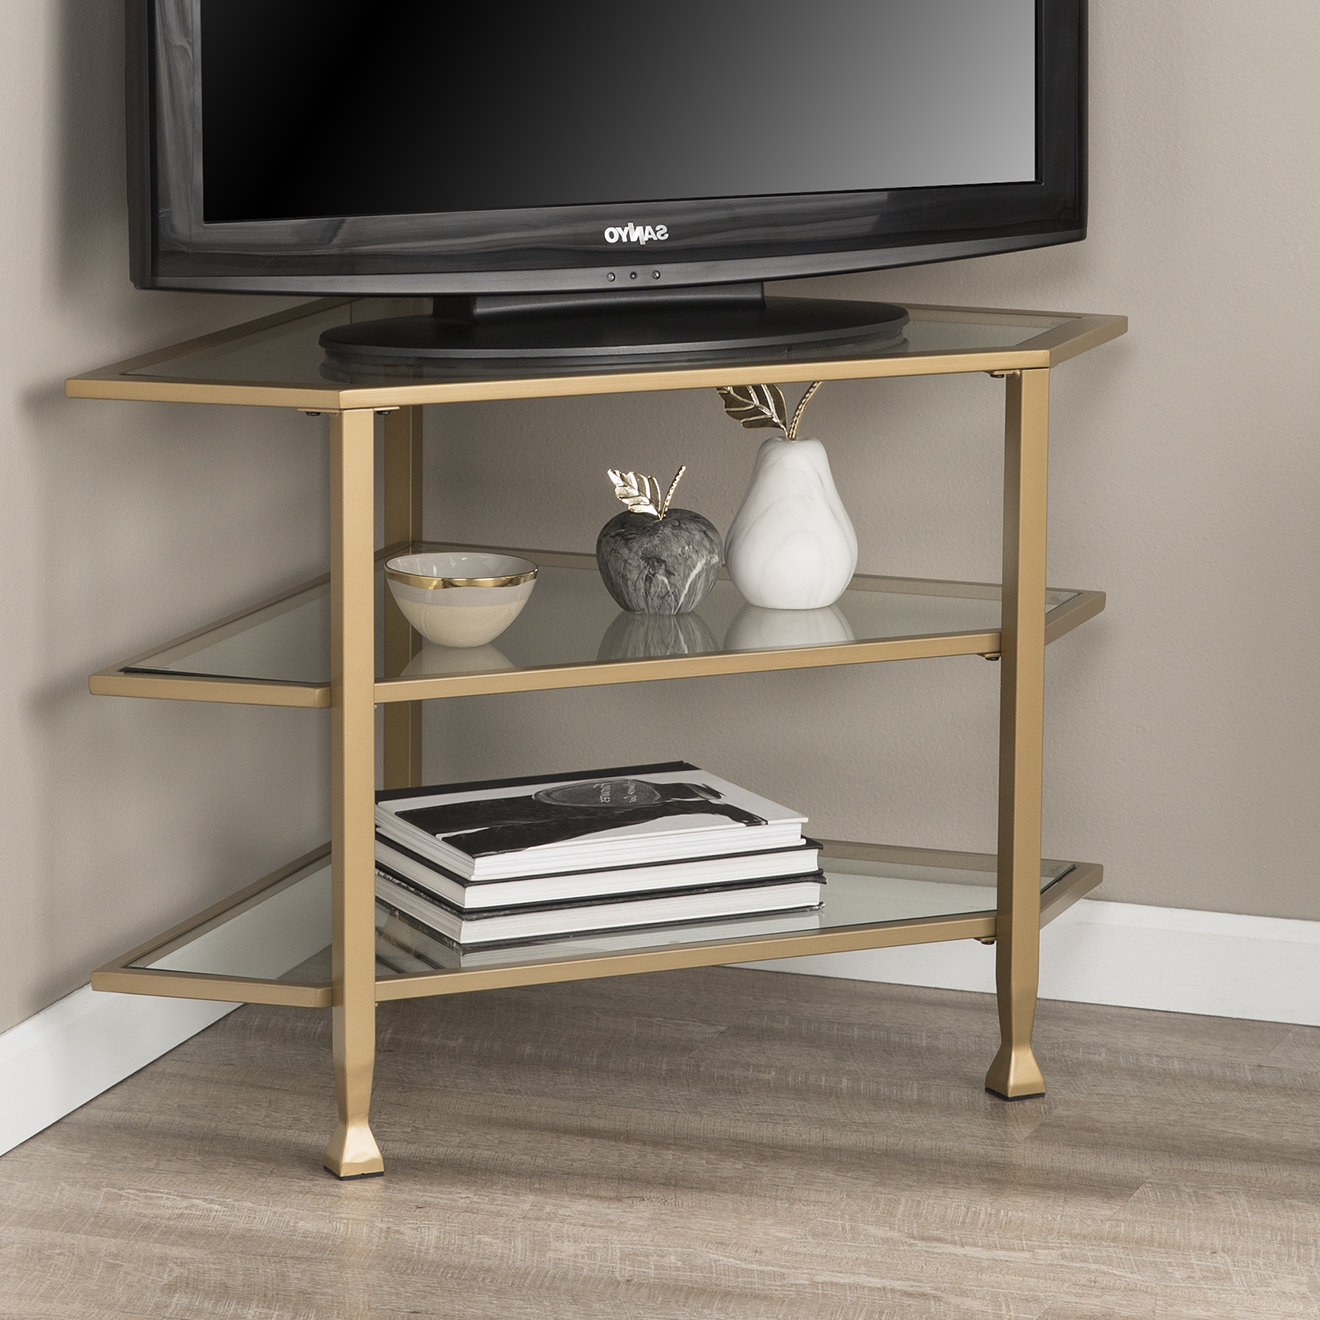 Glam Tv Stands You'll Love (Gallery 20 of 20)